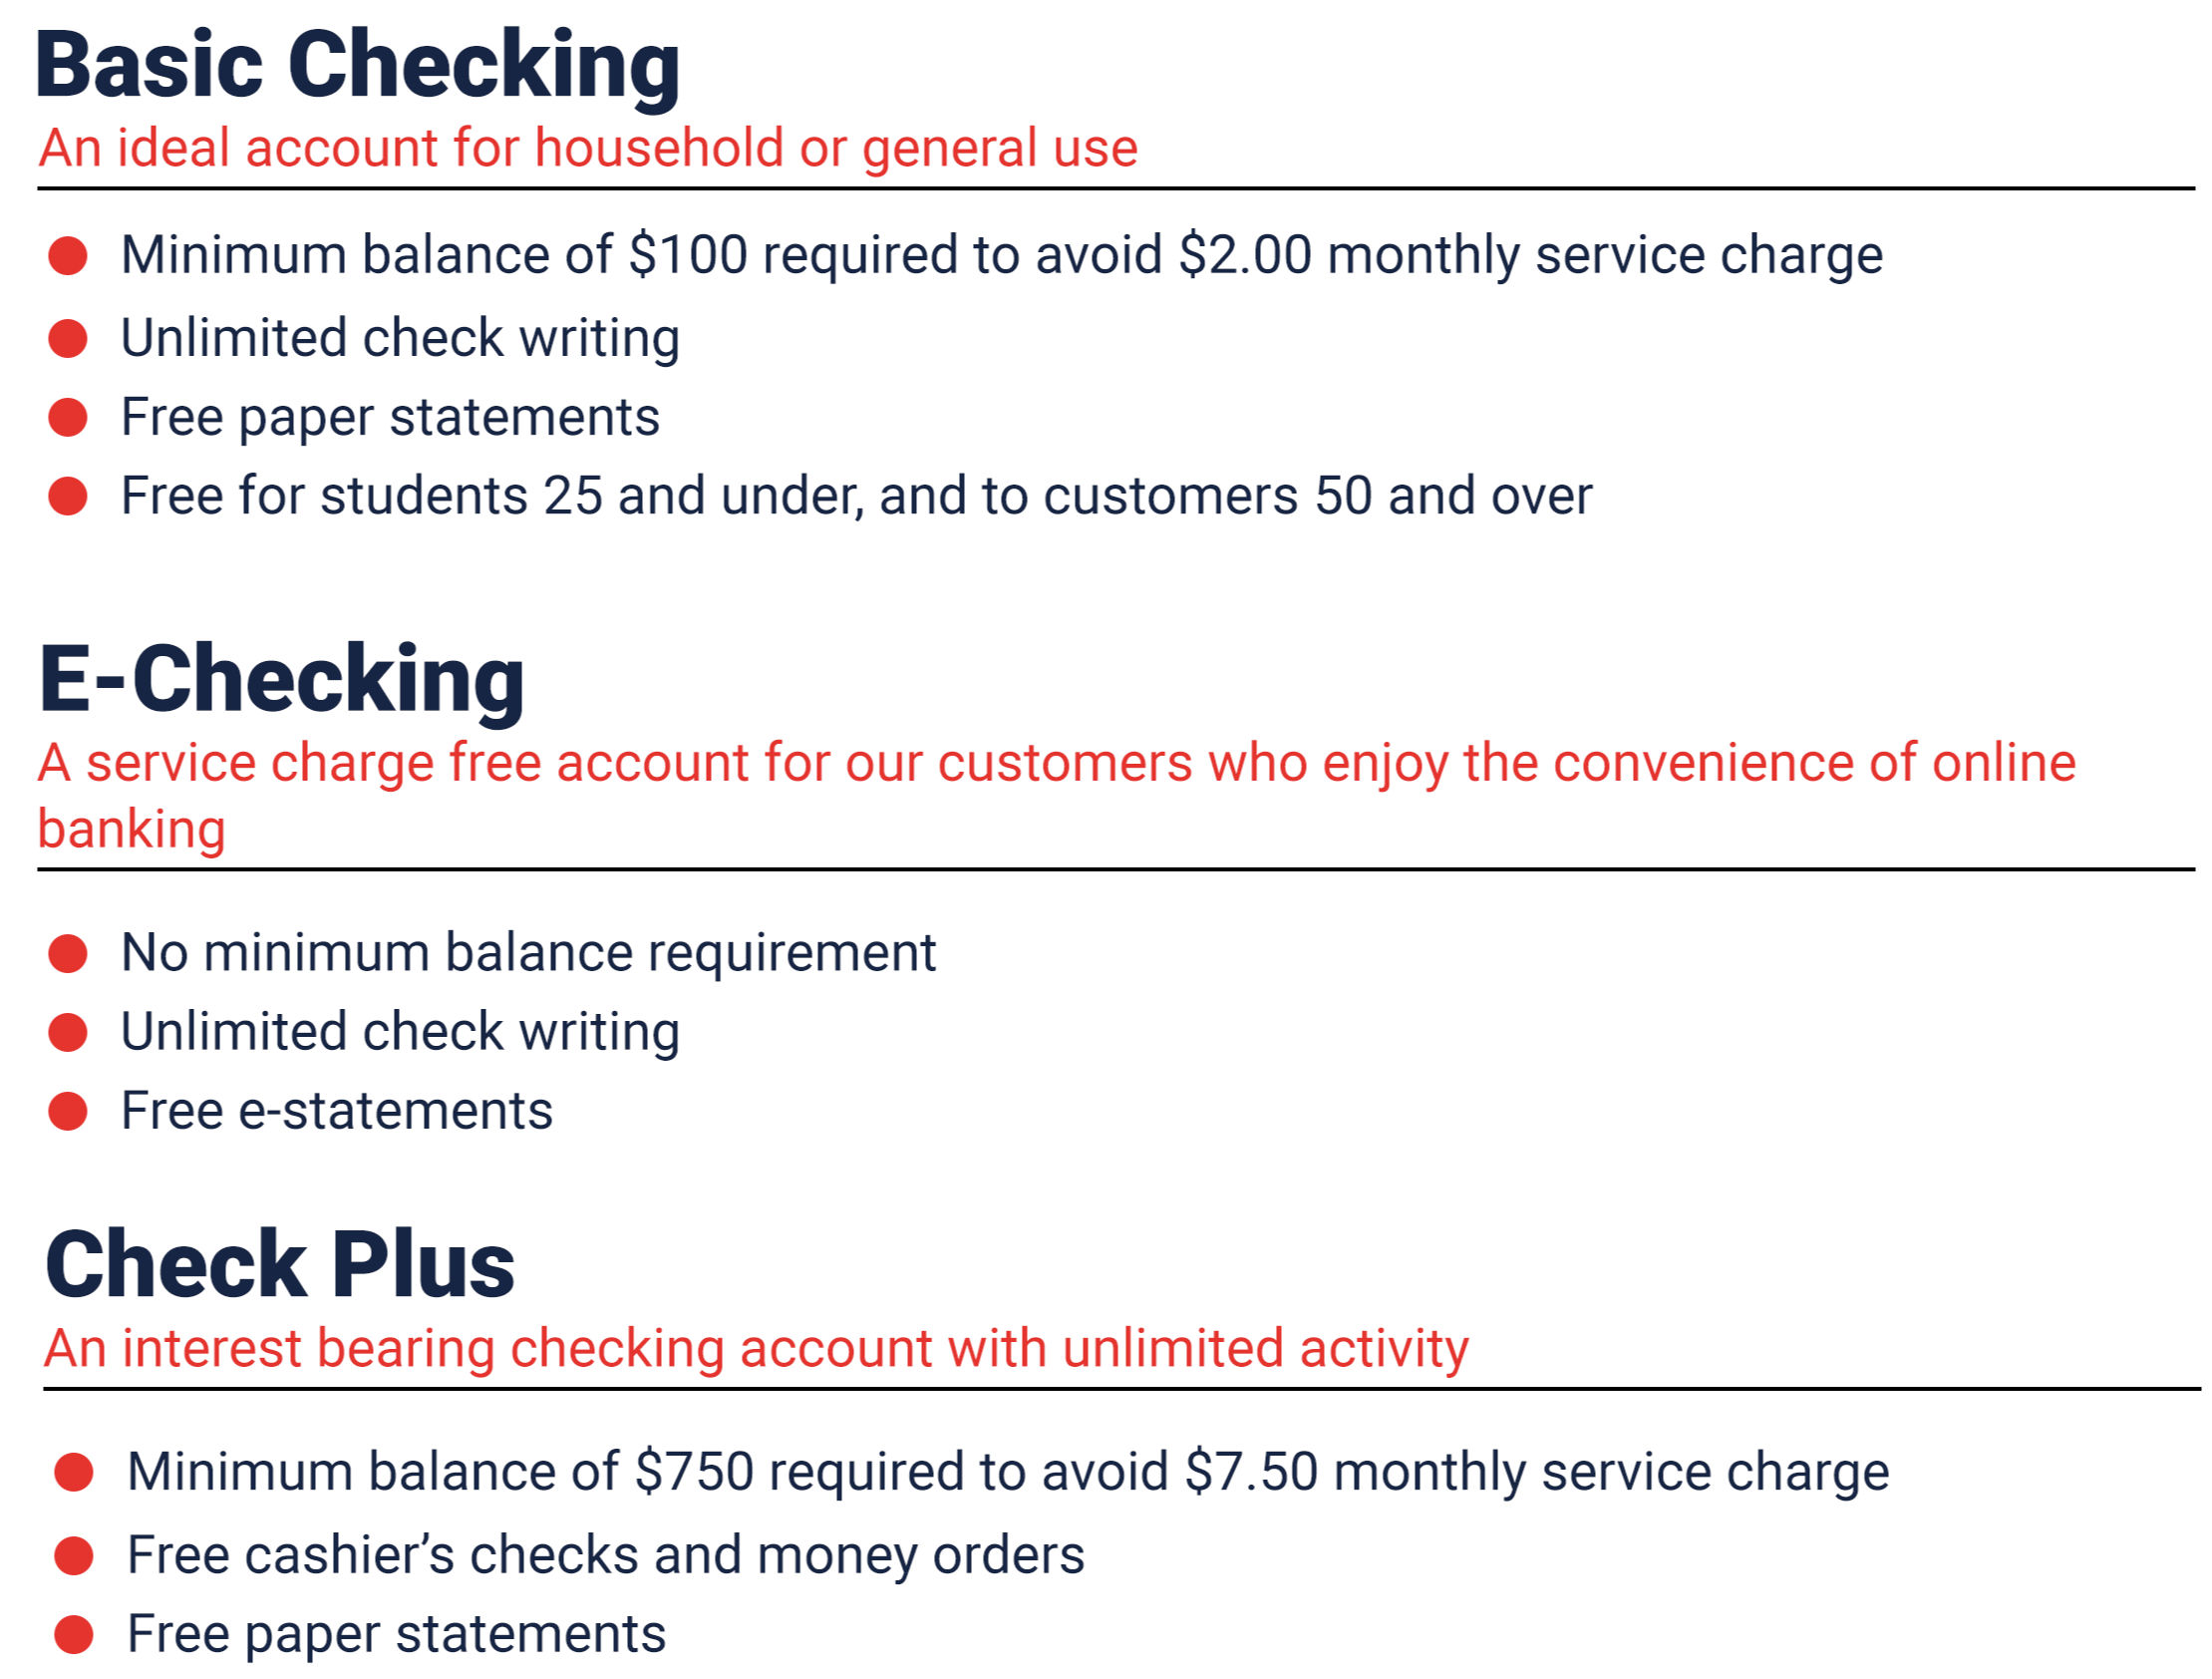 personal checking basic electronic check plus free statements online electric banking